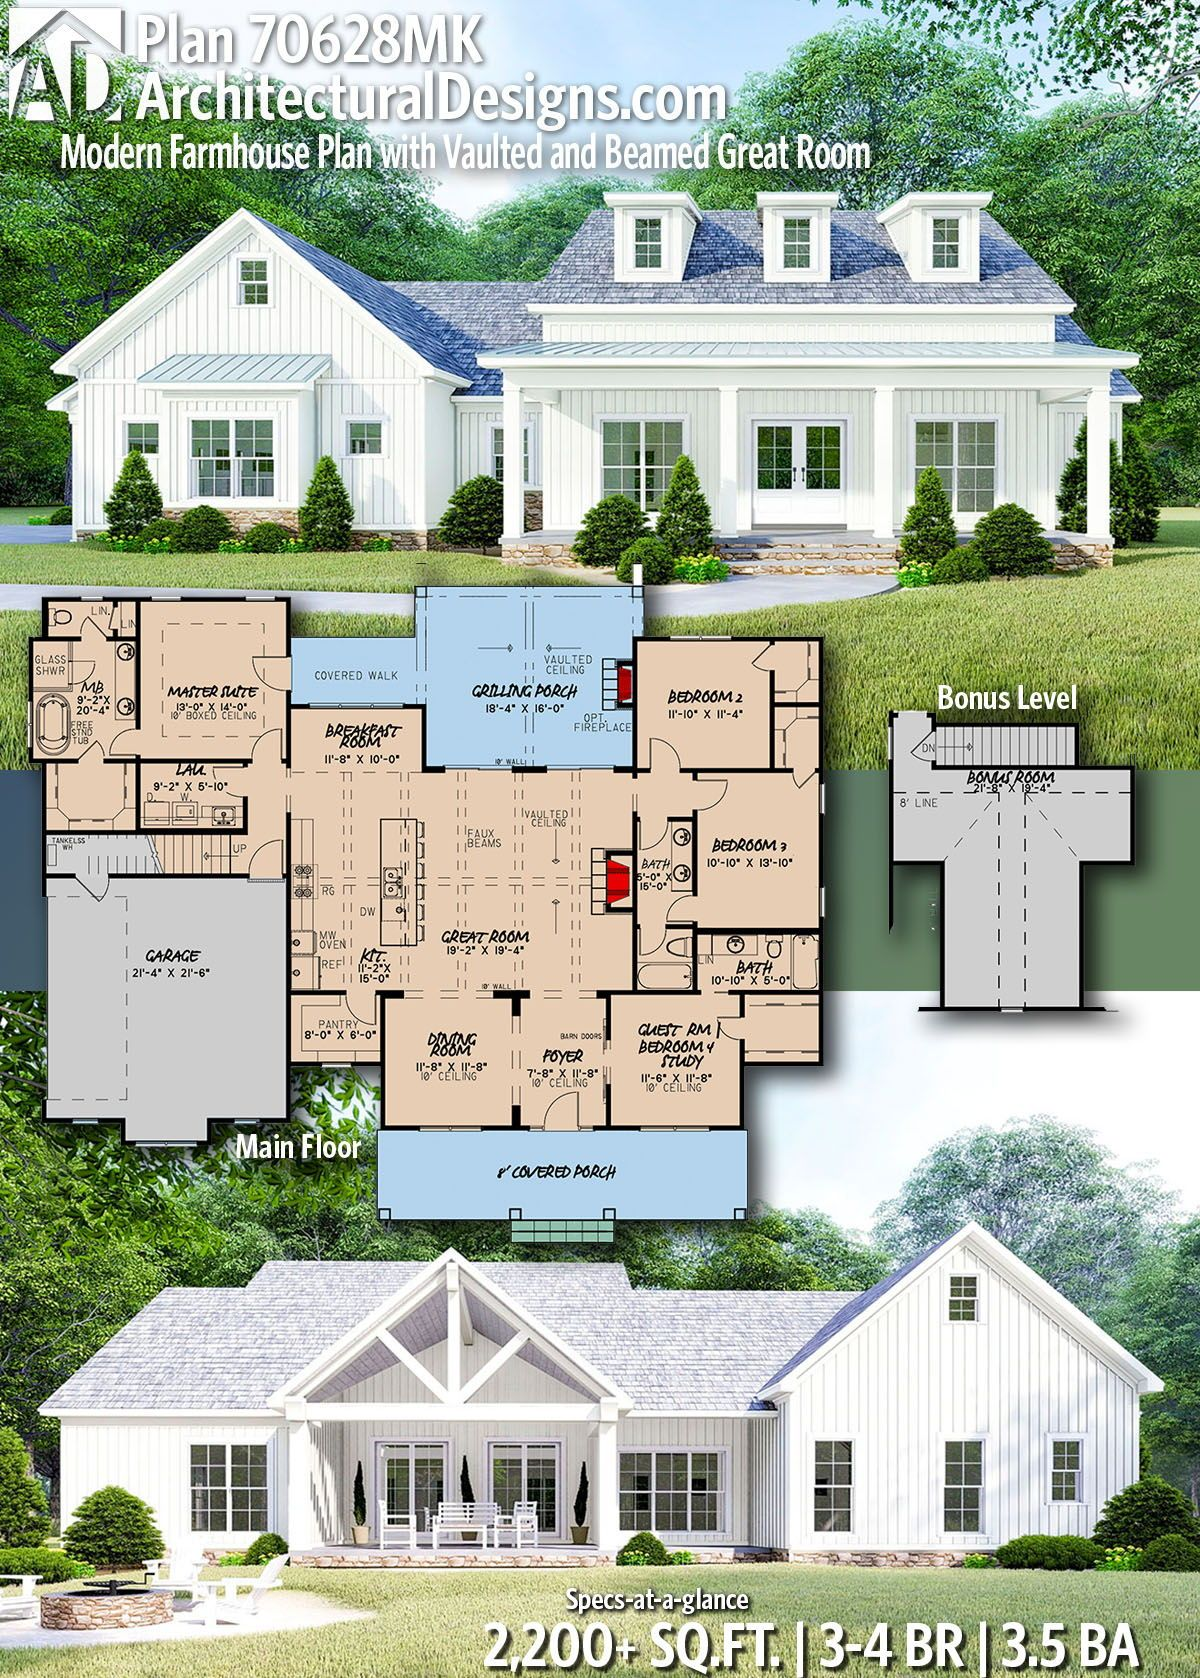 Plan 70628mk Modern Farmhouse Plan With Vaulted And Beamed Great Room Modern Farmhouse Plans Farmhouse Plans Dream House Plans